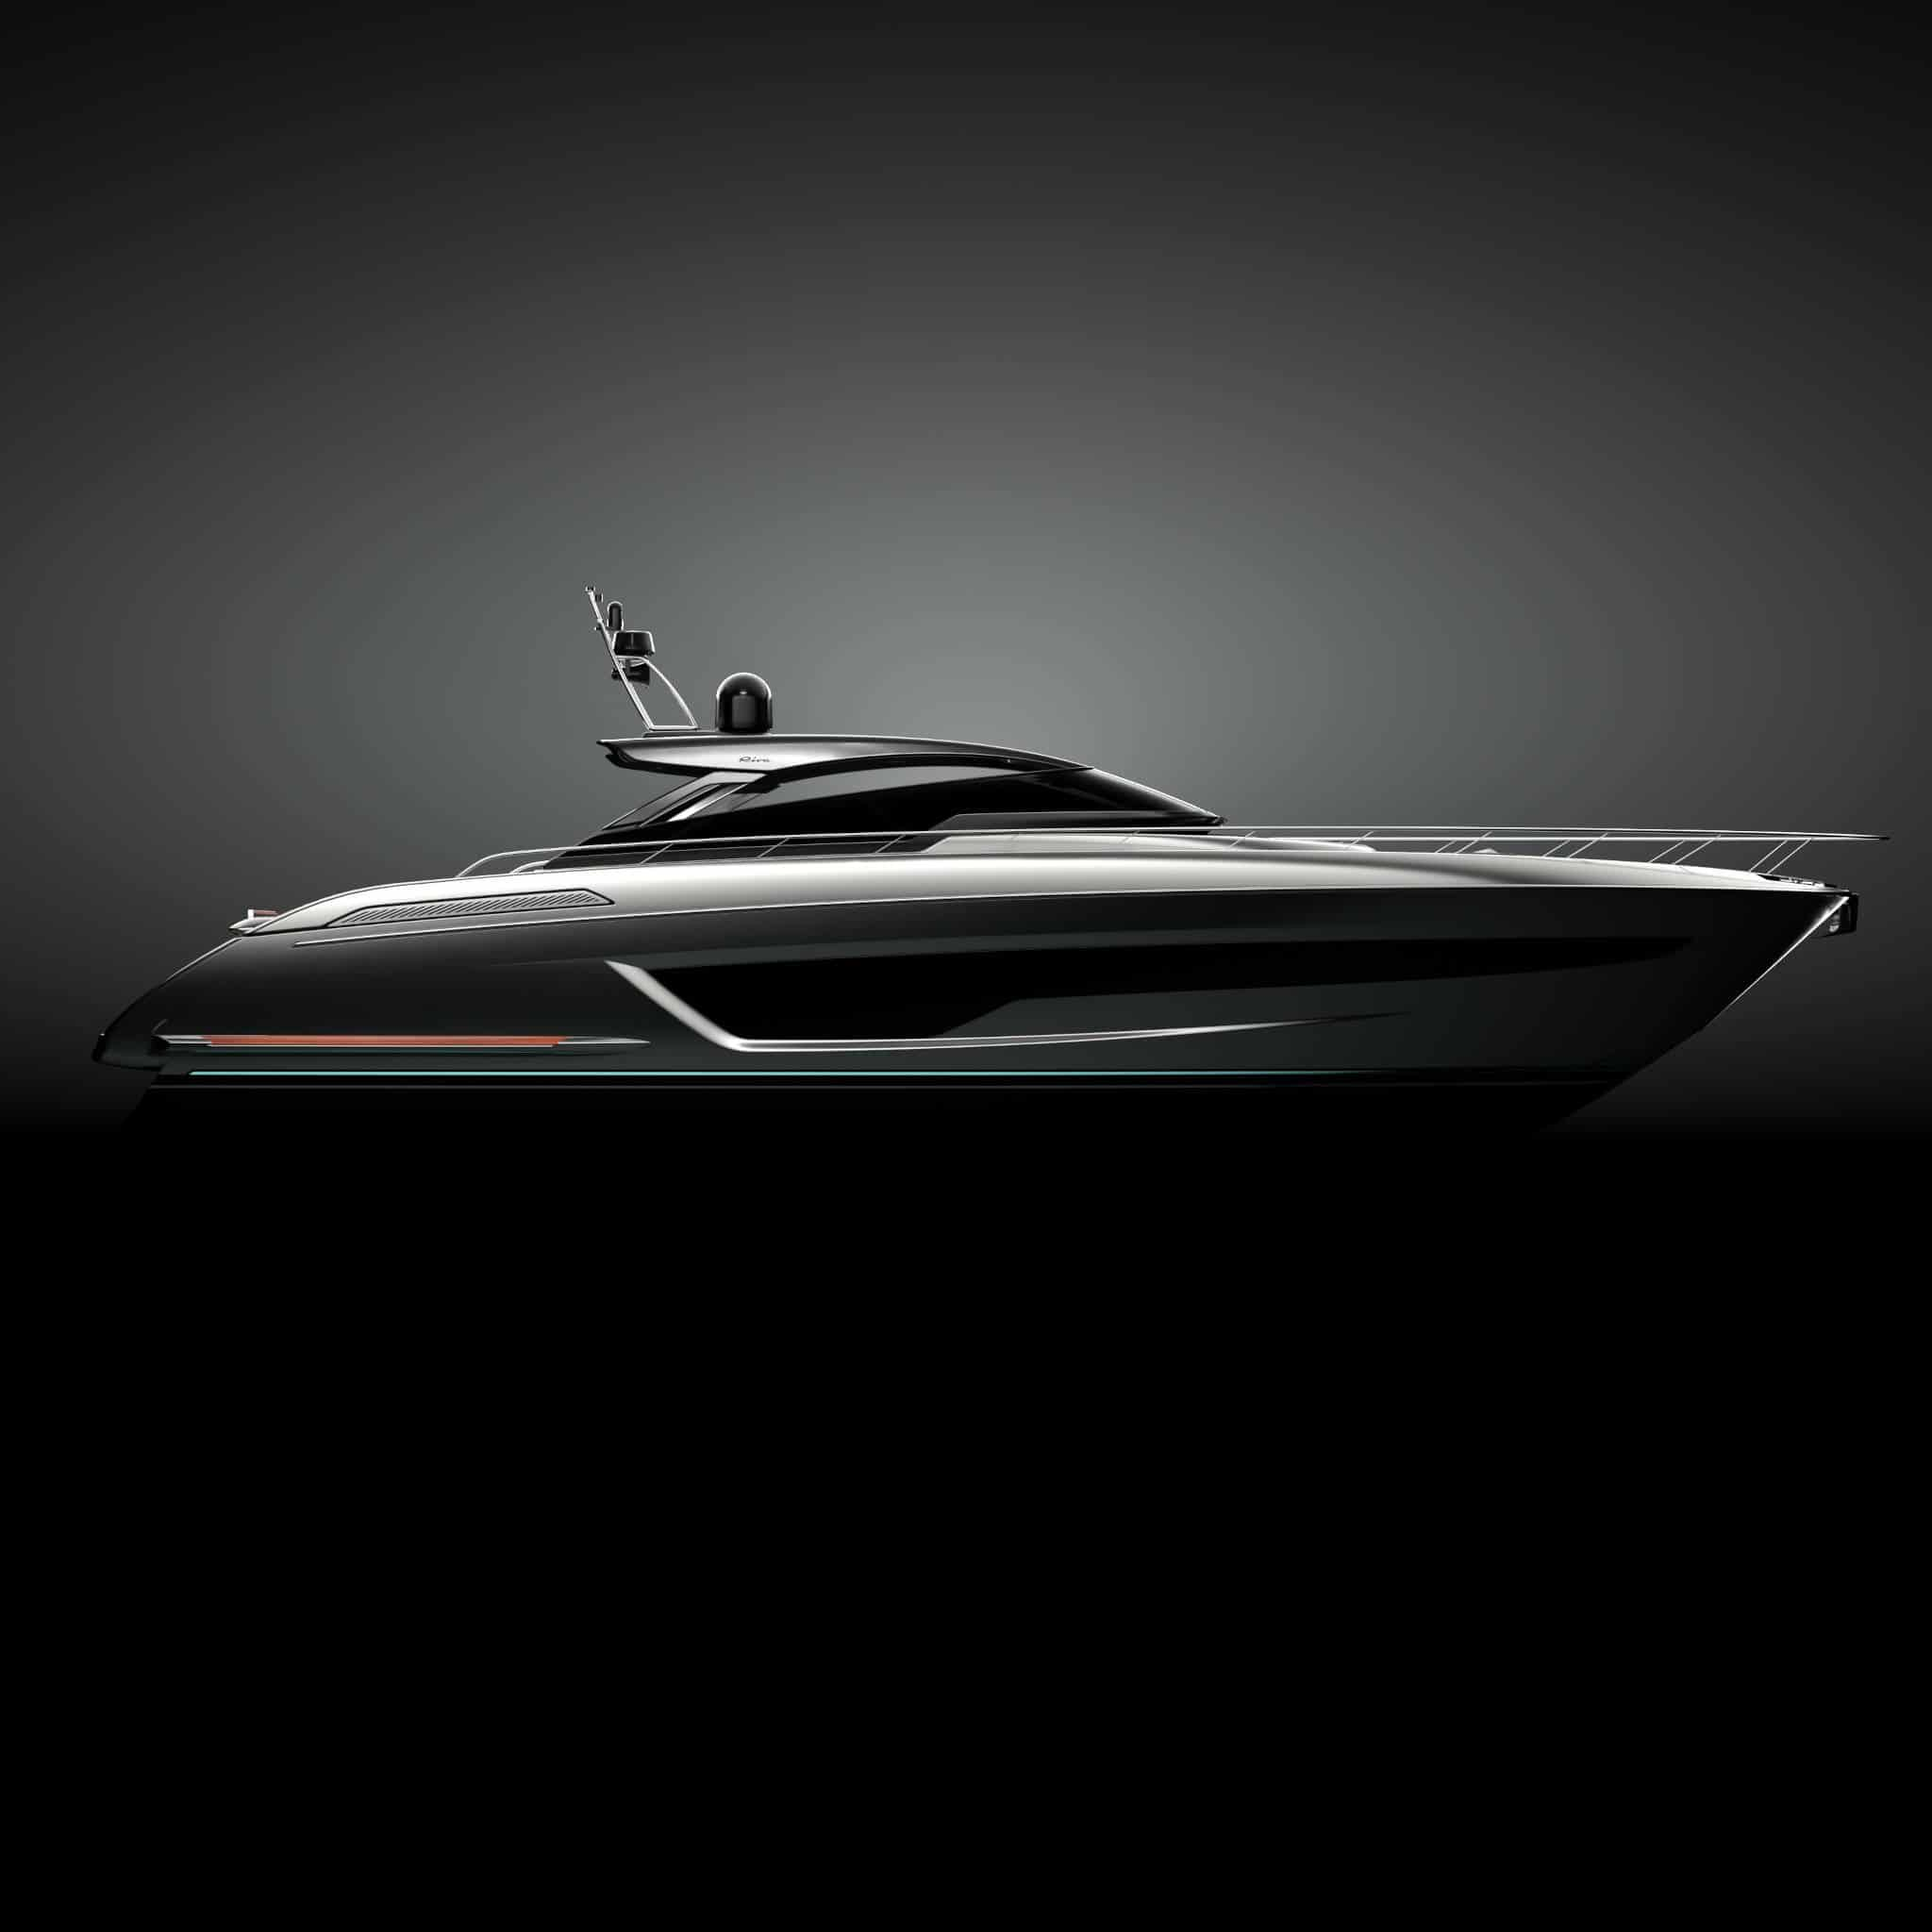 New yacht 68′ Diable: the new temptation from Riva